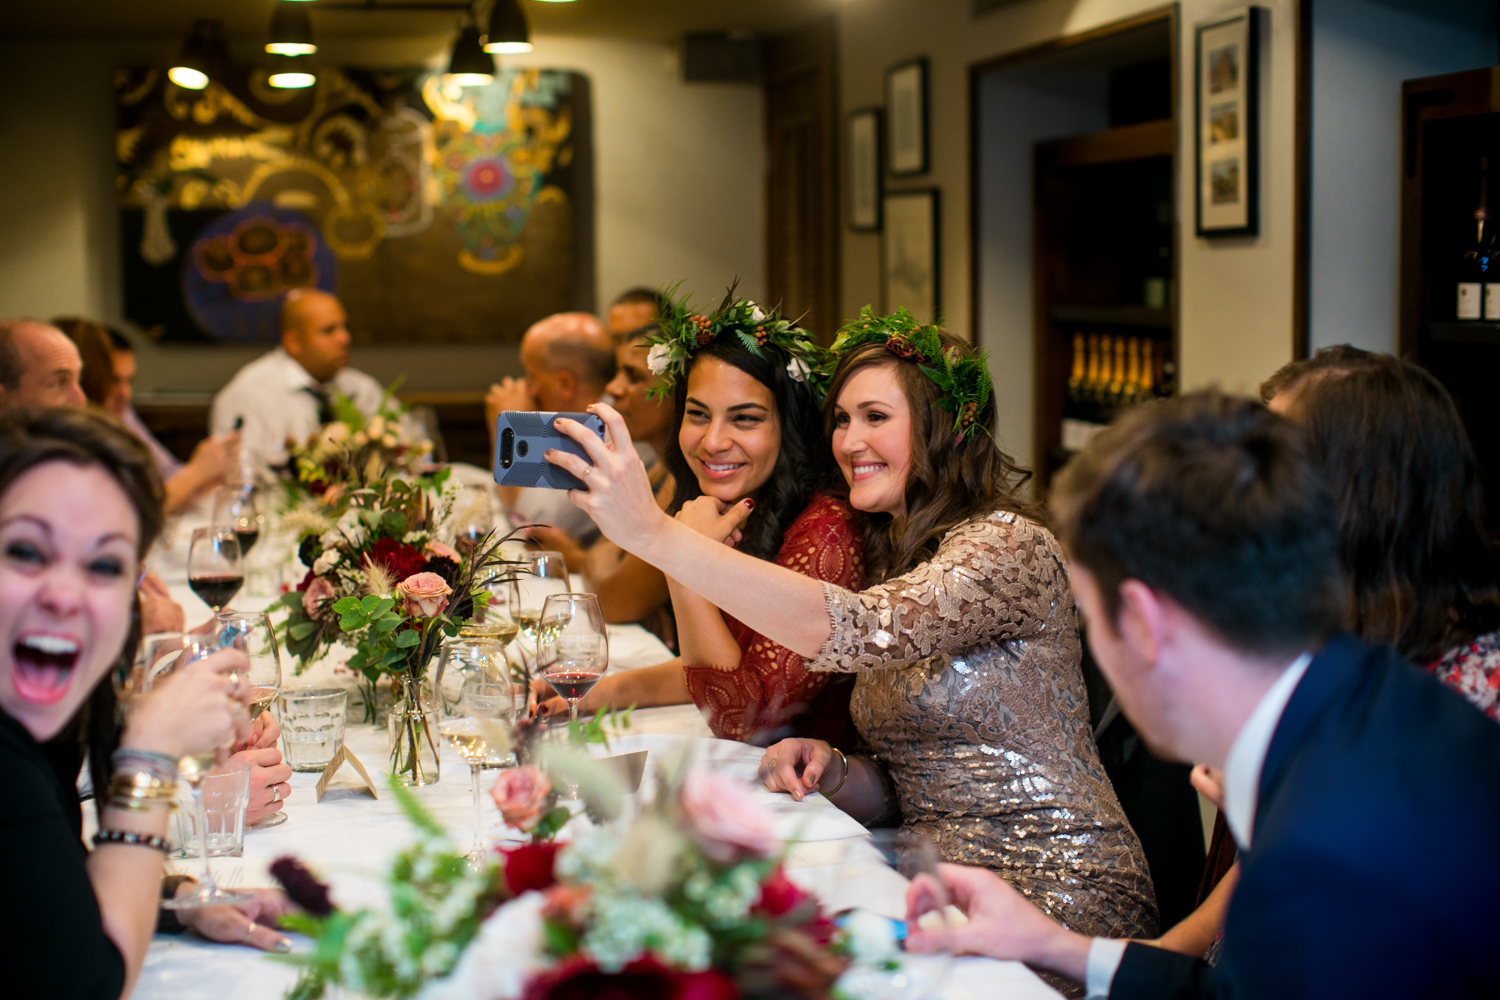 Brides take a selfie at their lunch wedding reception at Maialino in New York City.